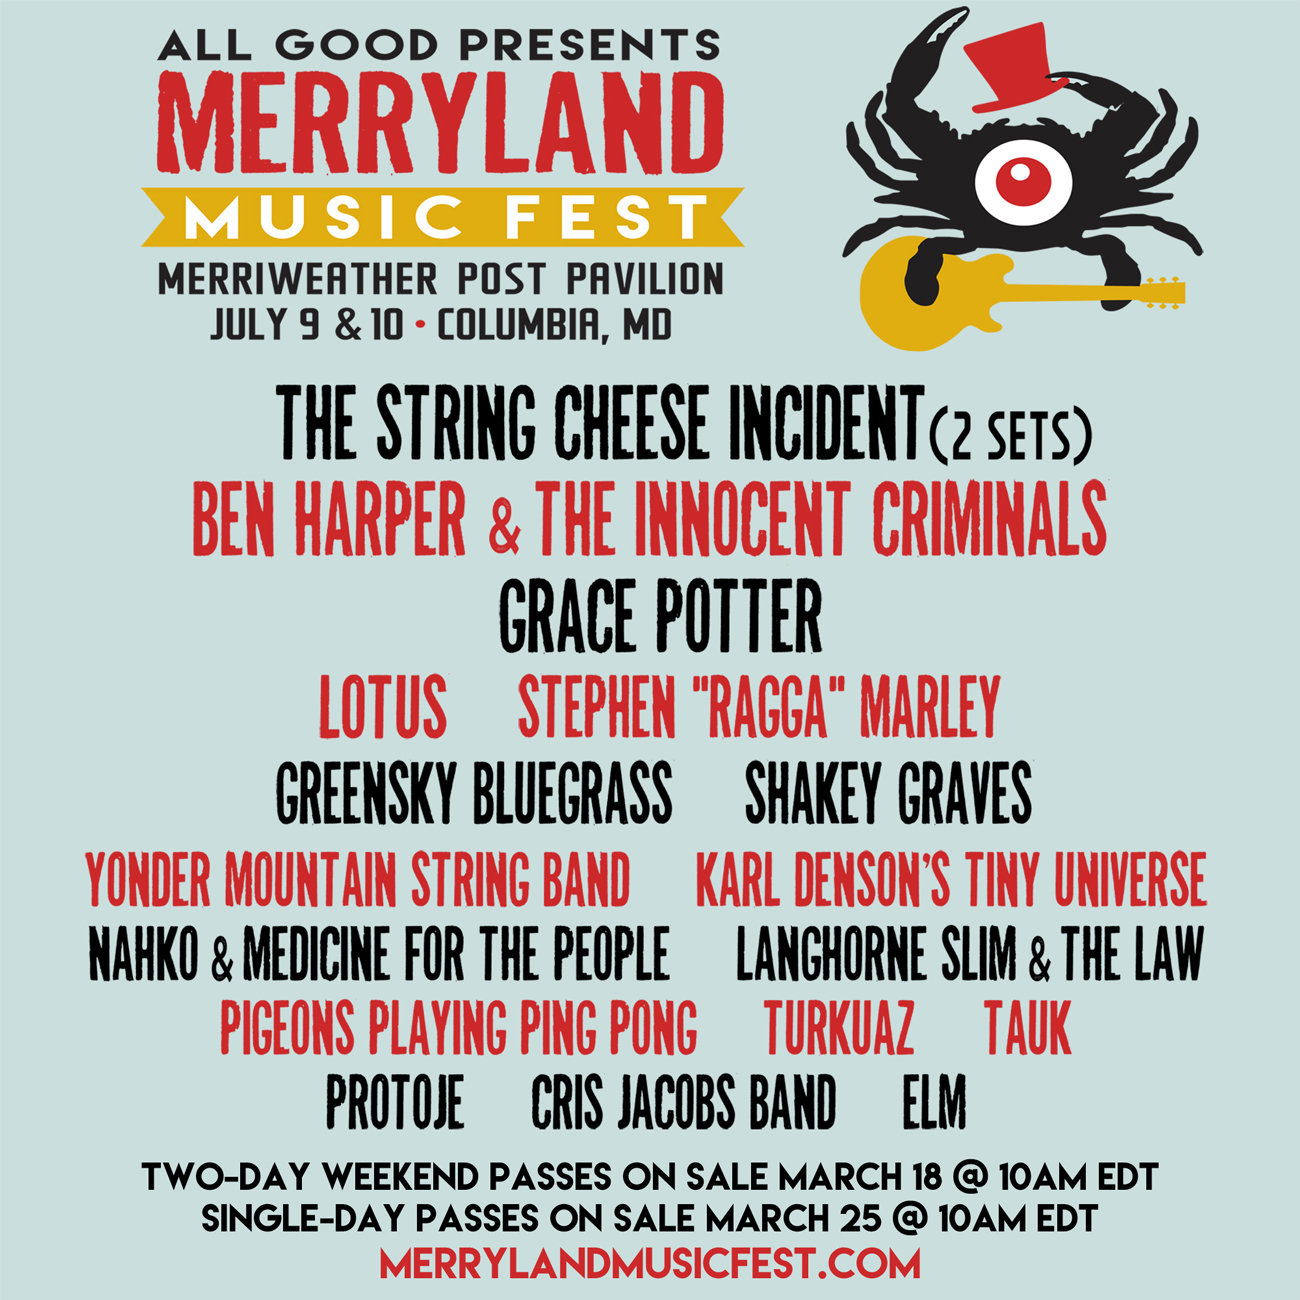 Merryland Music Fest 2016 lineup. Photo provided.